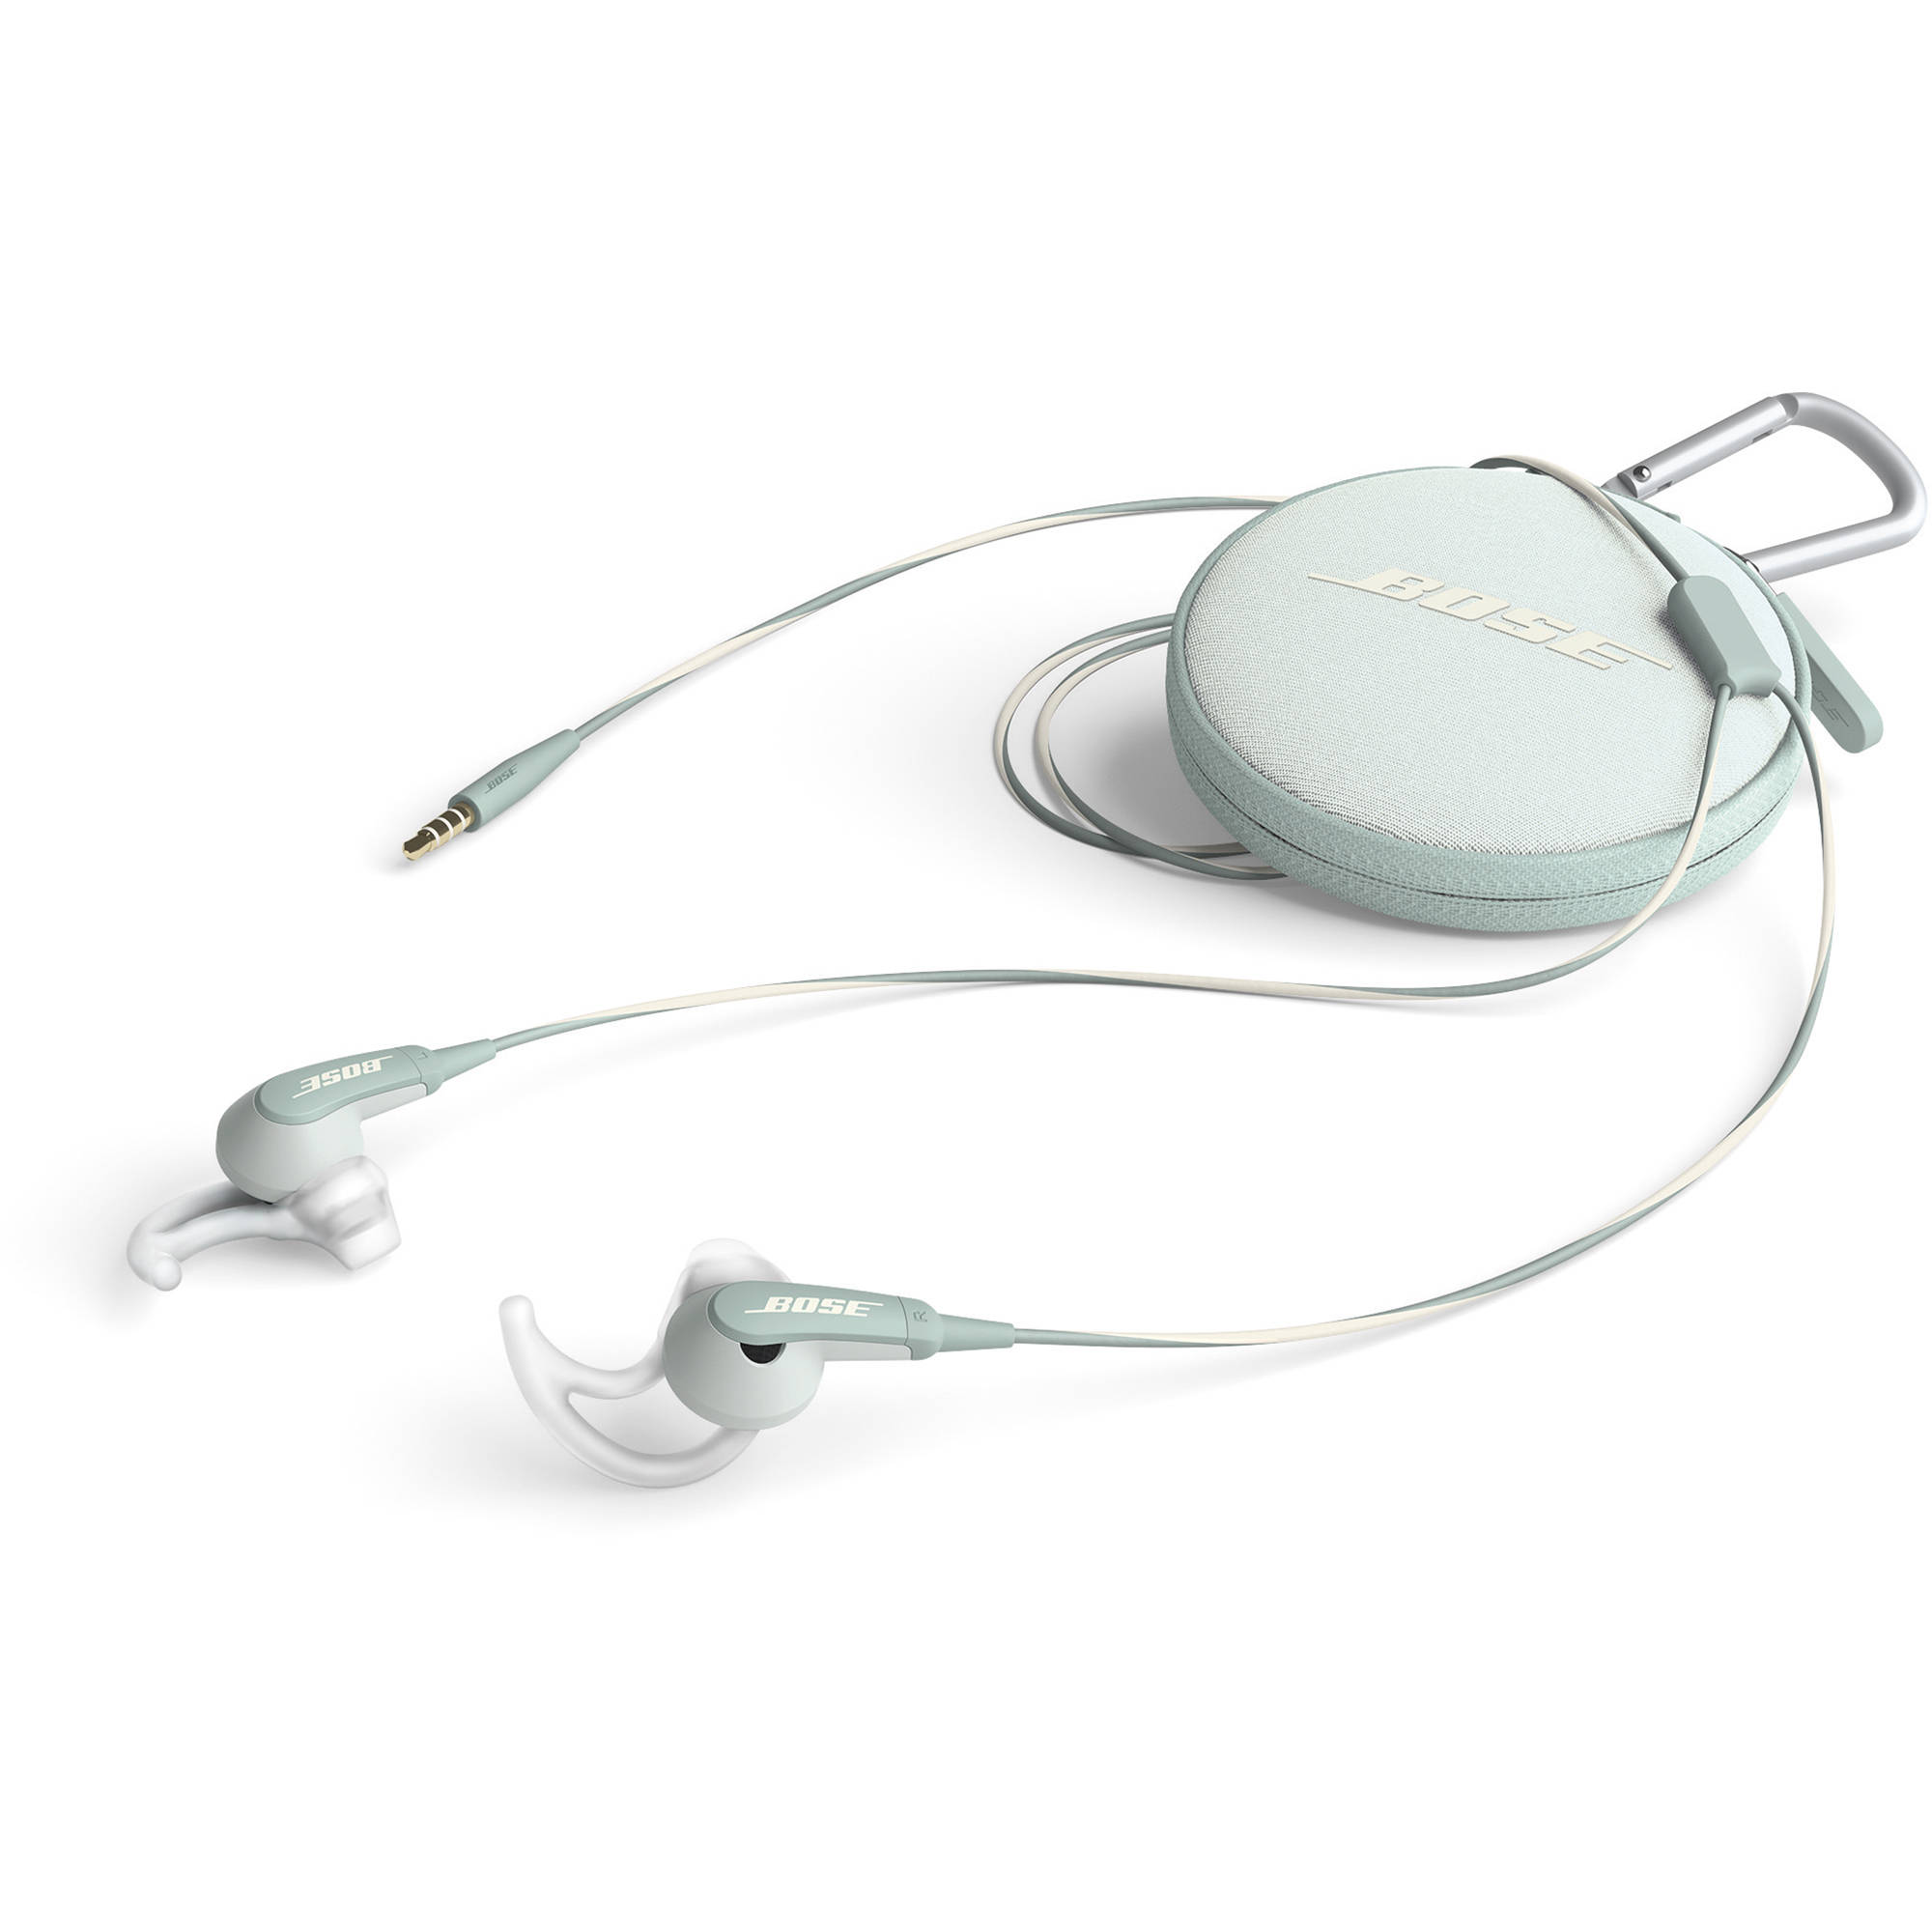 Bose SoundSport In-Ear Headphones-Audio Only (Frost) 741776-0150